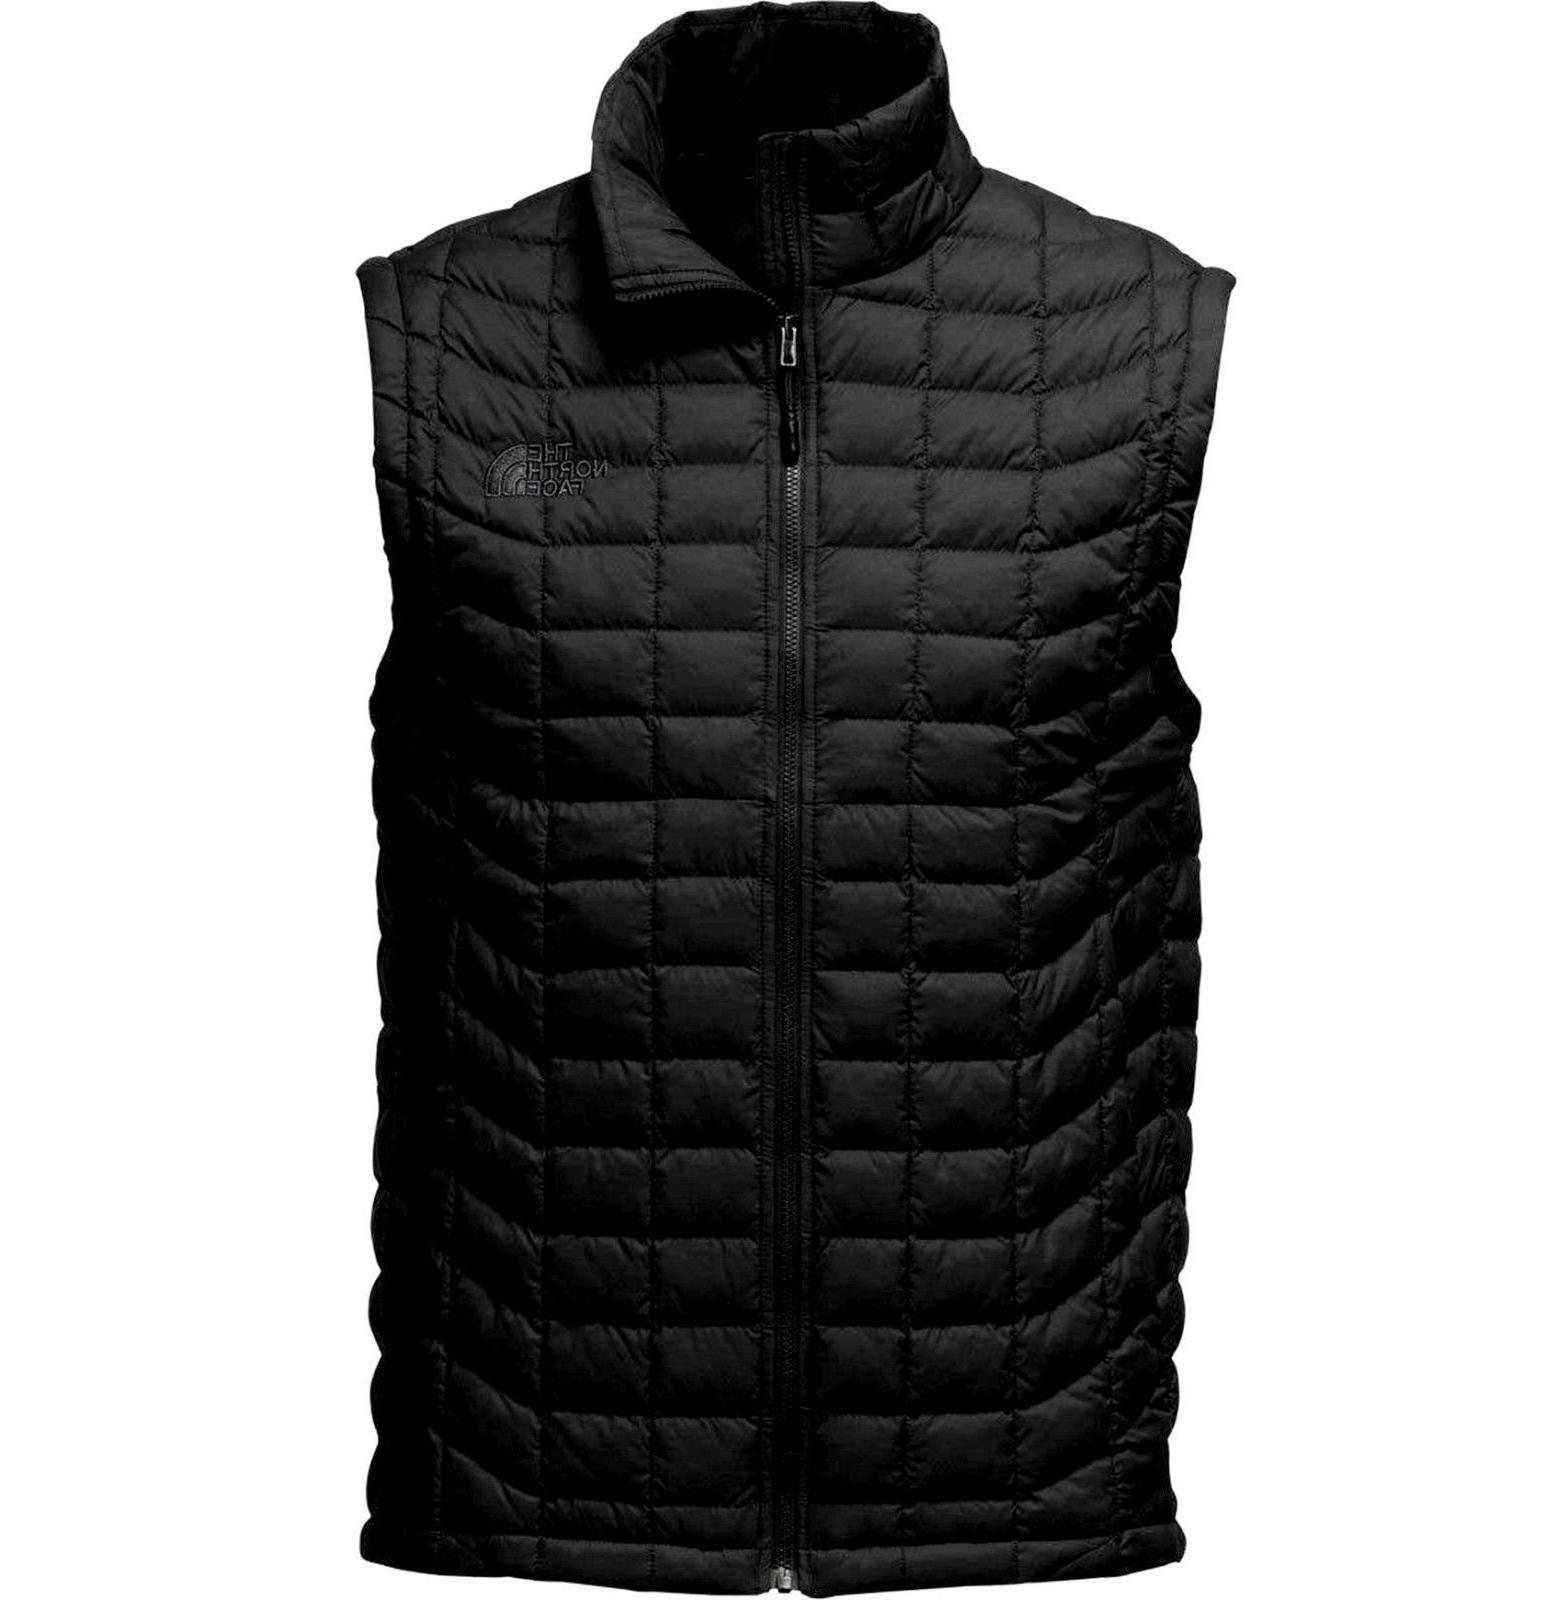 nwt men s thermoball vest black